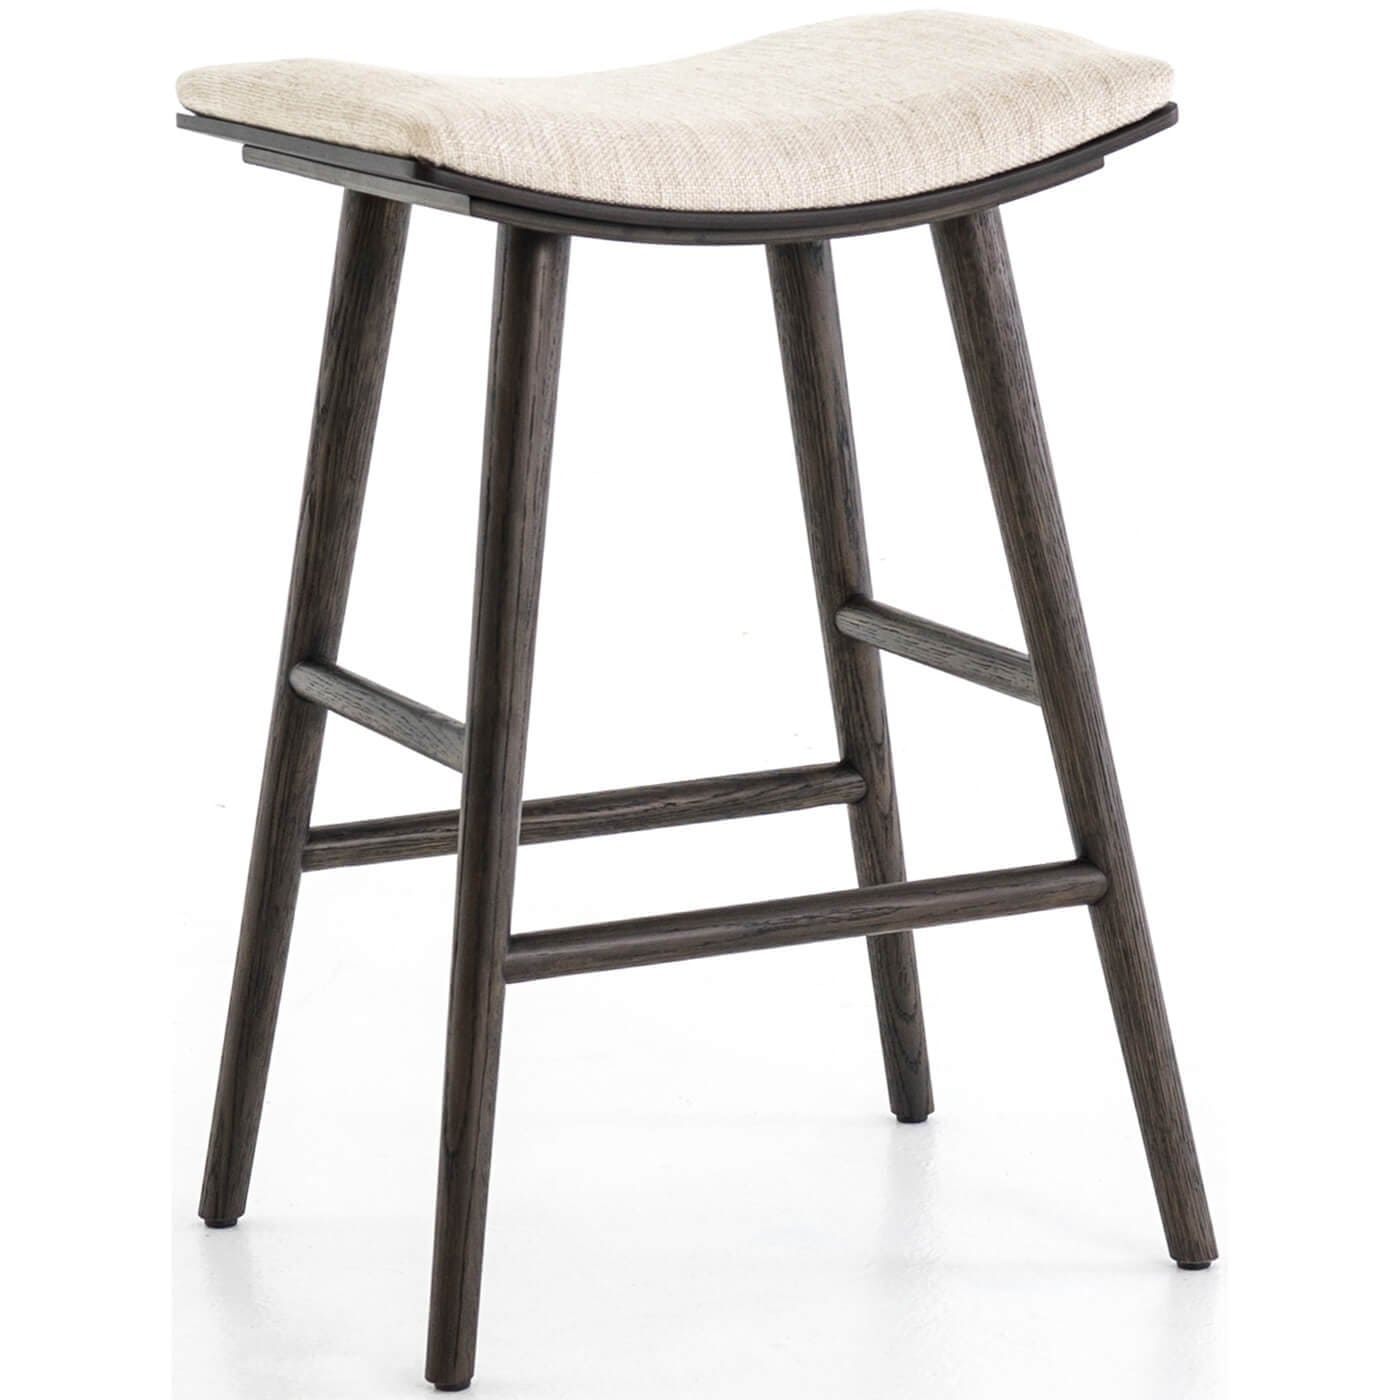 Strange Union Counter Stool Essence Natural High Fashion Home Evergreenethics Interior Chair Design Evergreenethicsorg